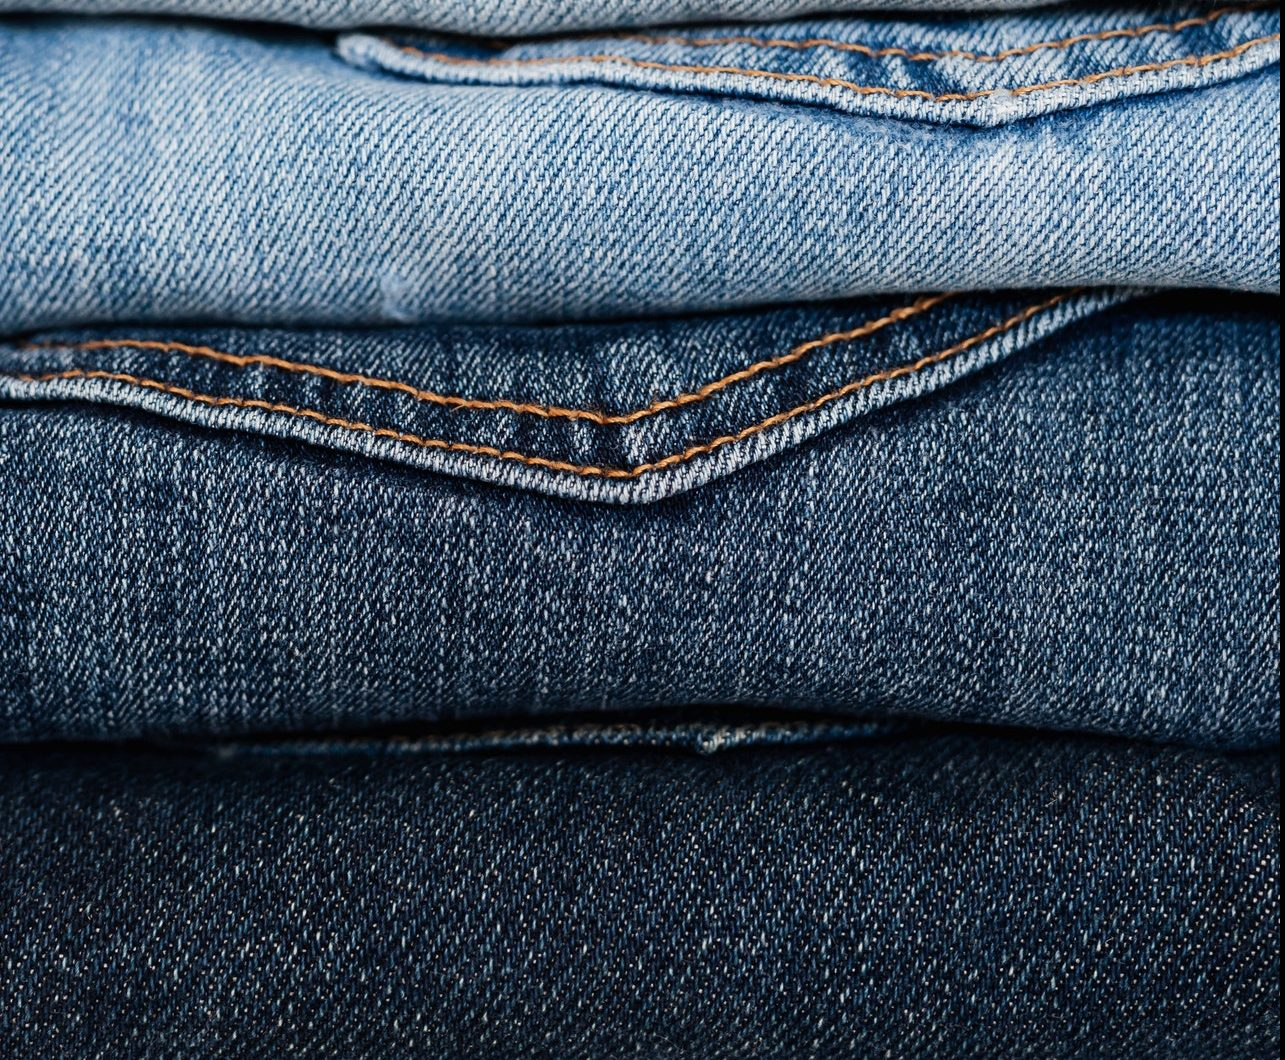 a pile of denim jeans